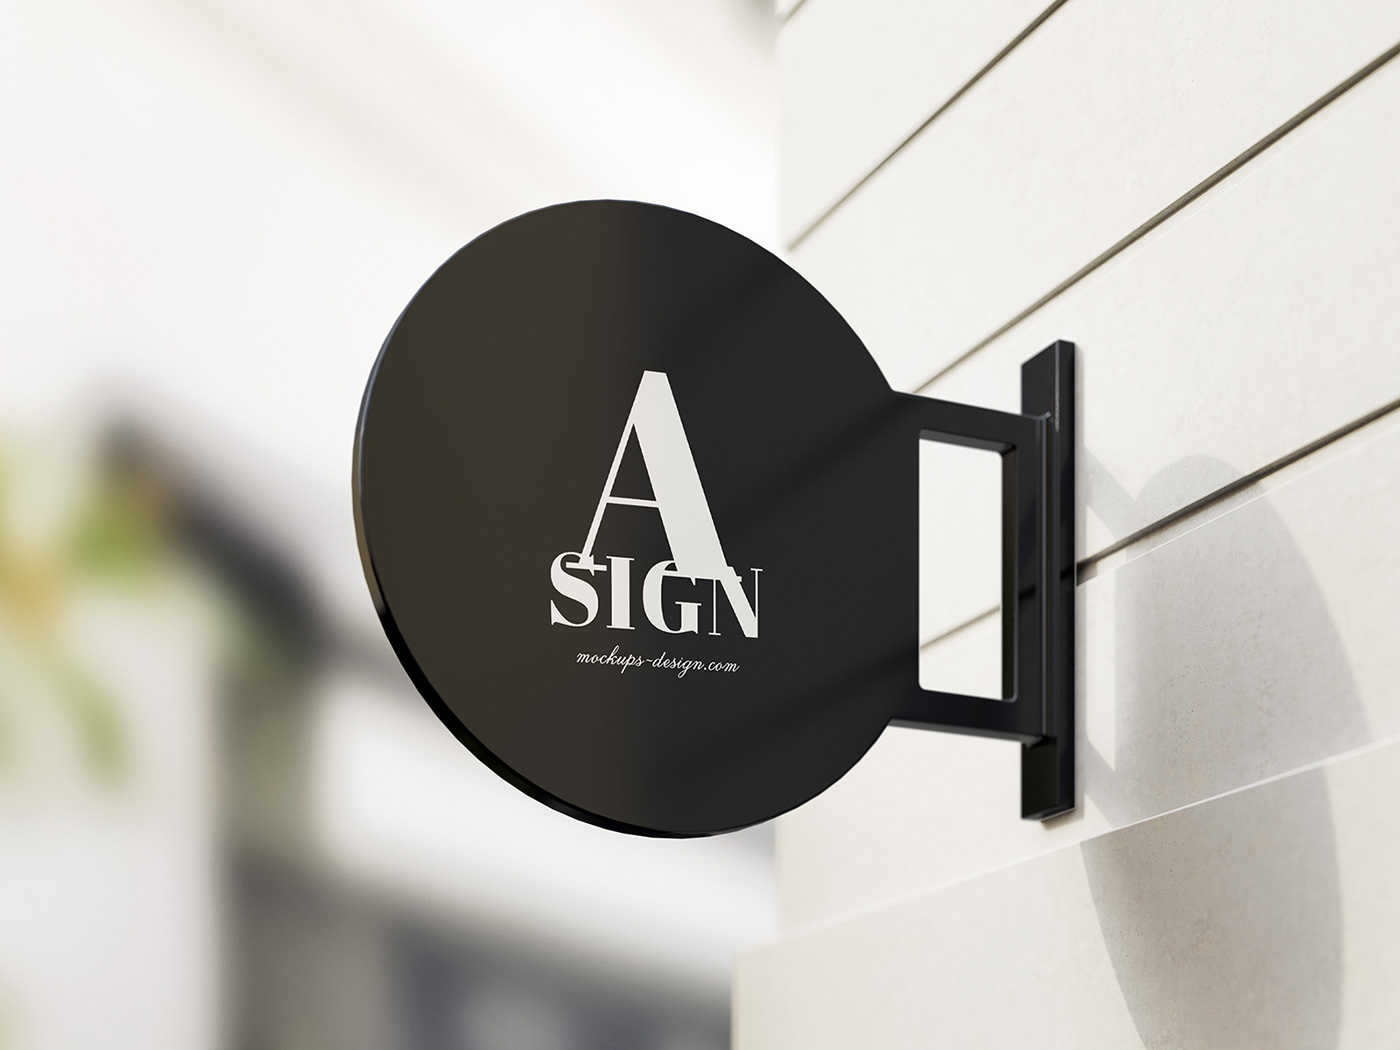 Free sign mockup click above link to download